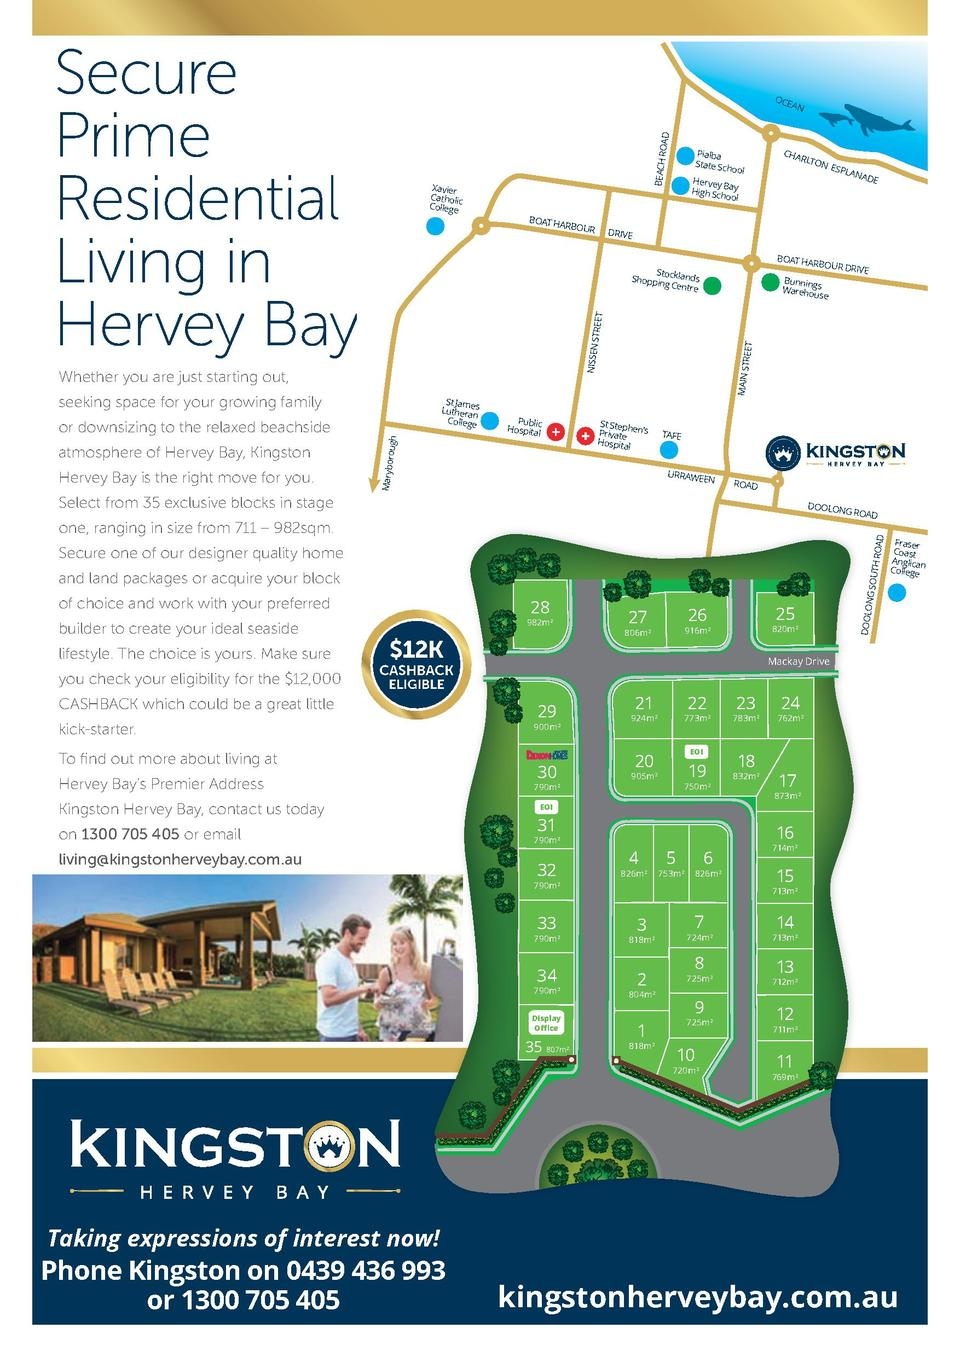 St James Lutheran College St James Lutheran College  onliving kingstonherveybay.com.au 1300 705 405 or email living kingst...